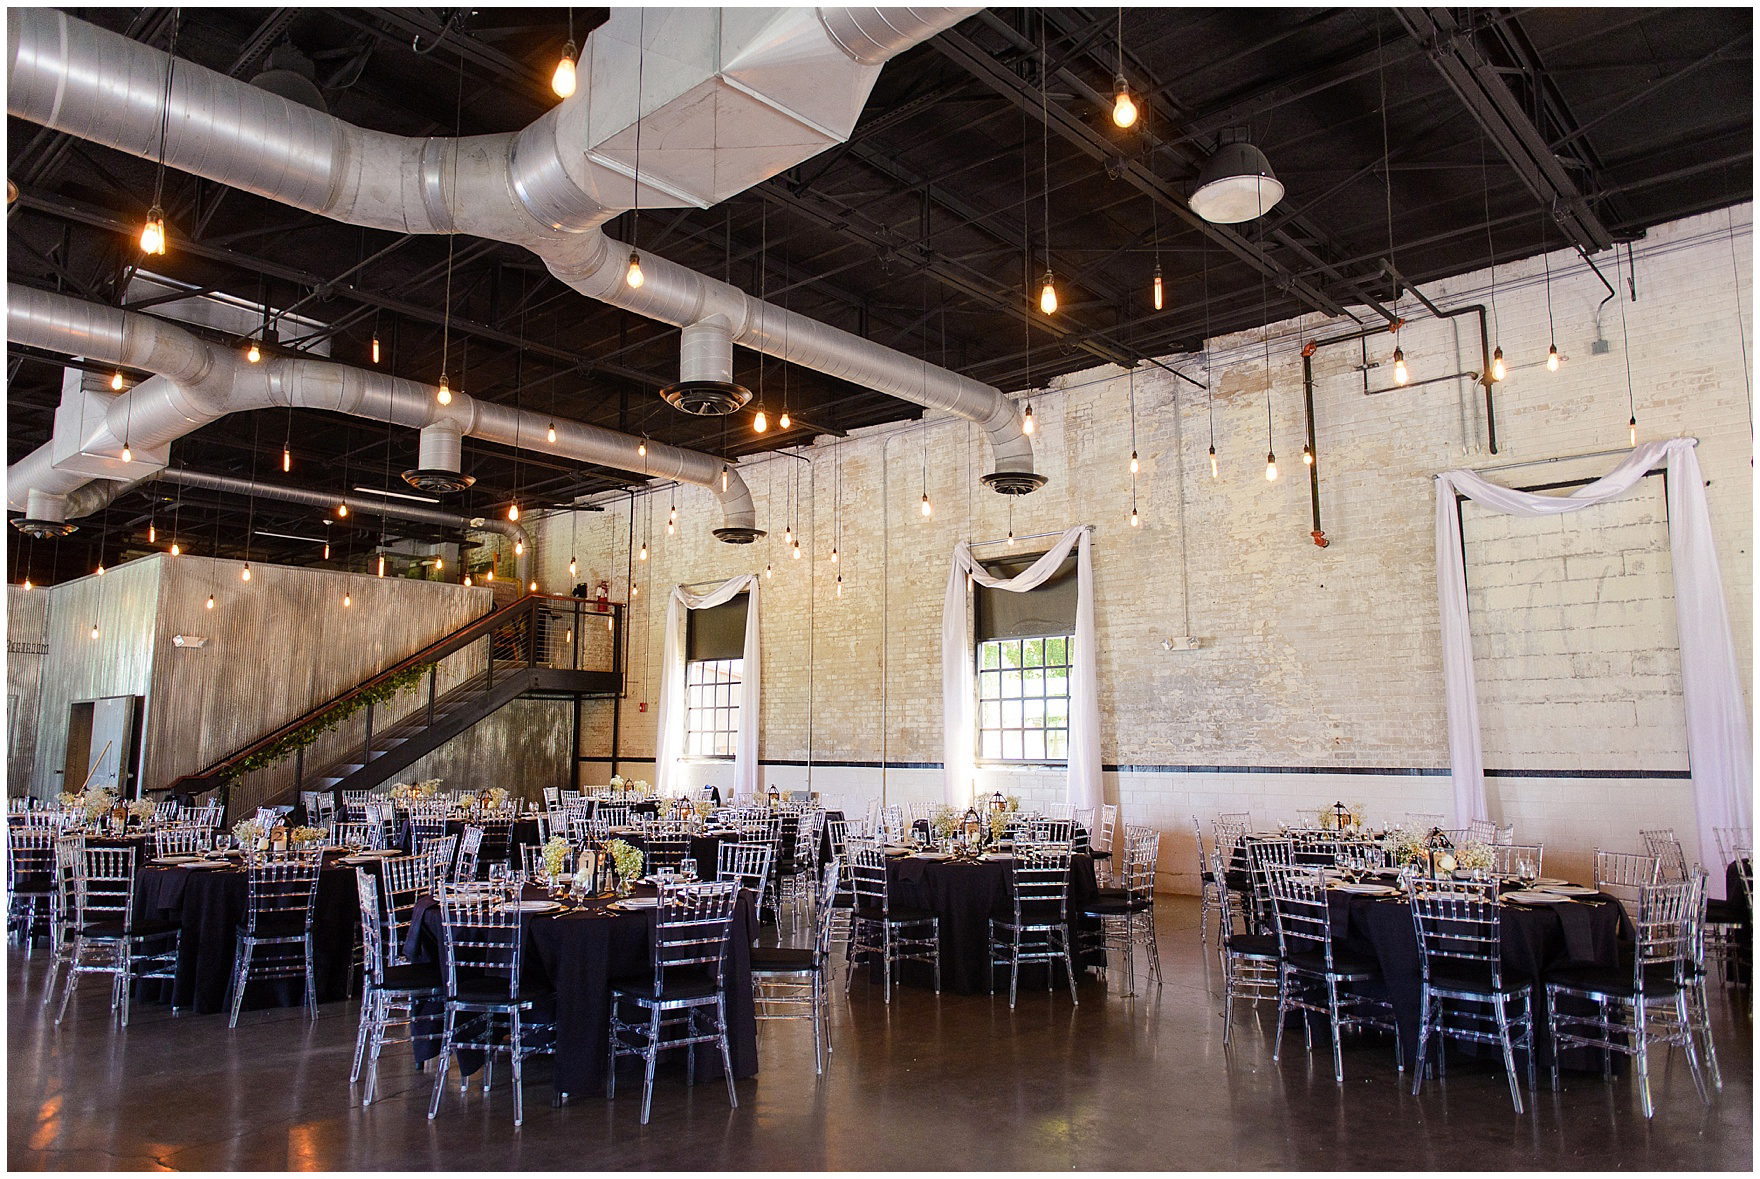 Interior of The Brick in South Bend, site of the reception for a University of Notre Dame wedding.